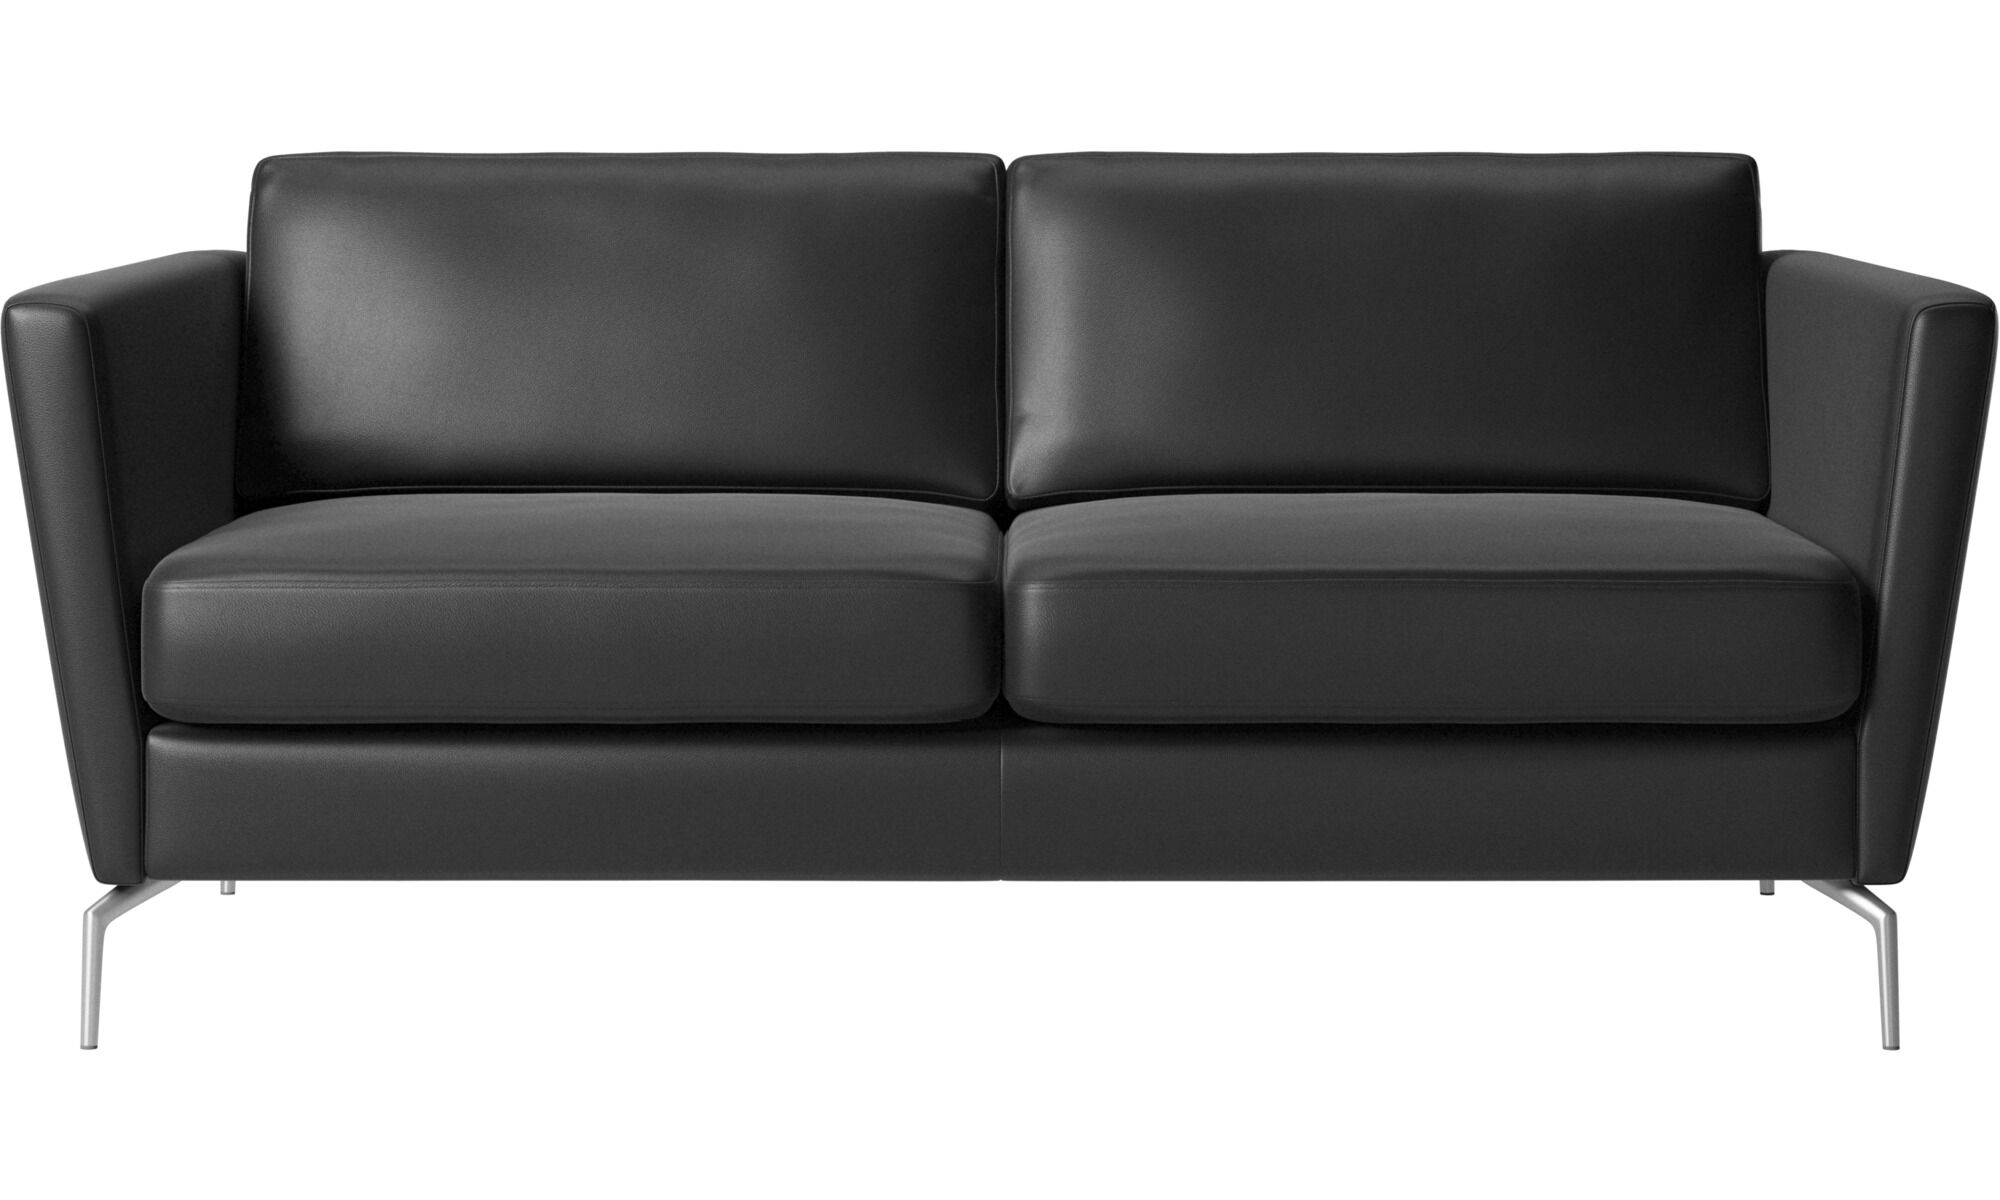 Ikea Norsborg Ecksofa 2er Sofas Ypperlig Seater Sofa In Gunnared Dark Grey With 2er